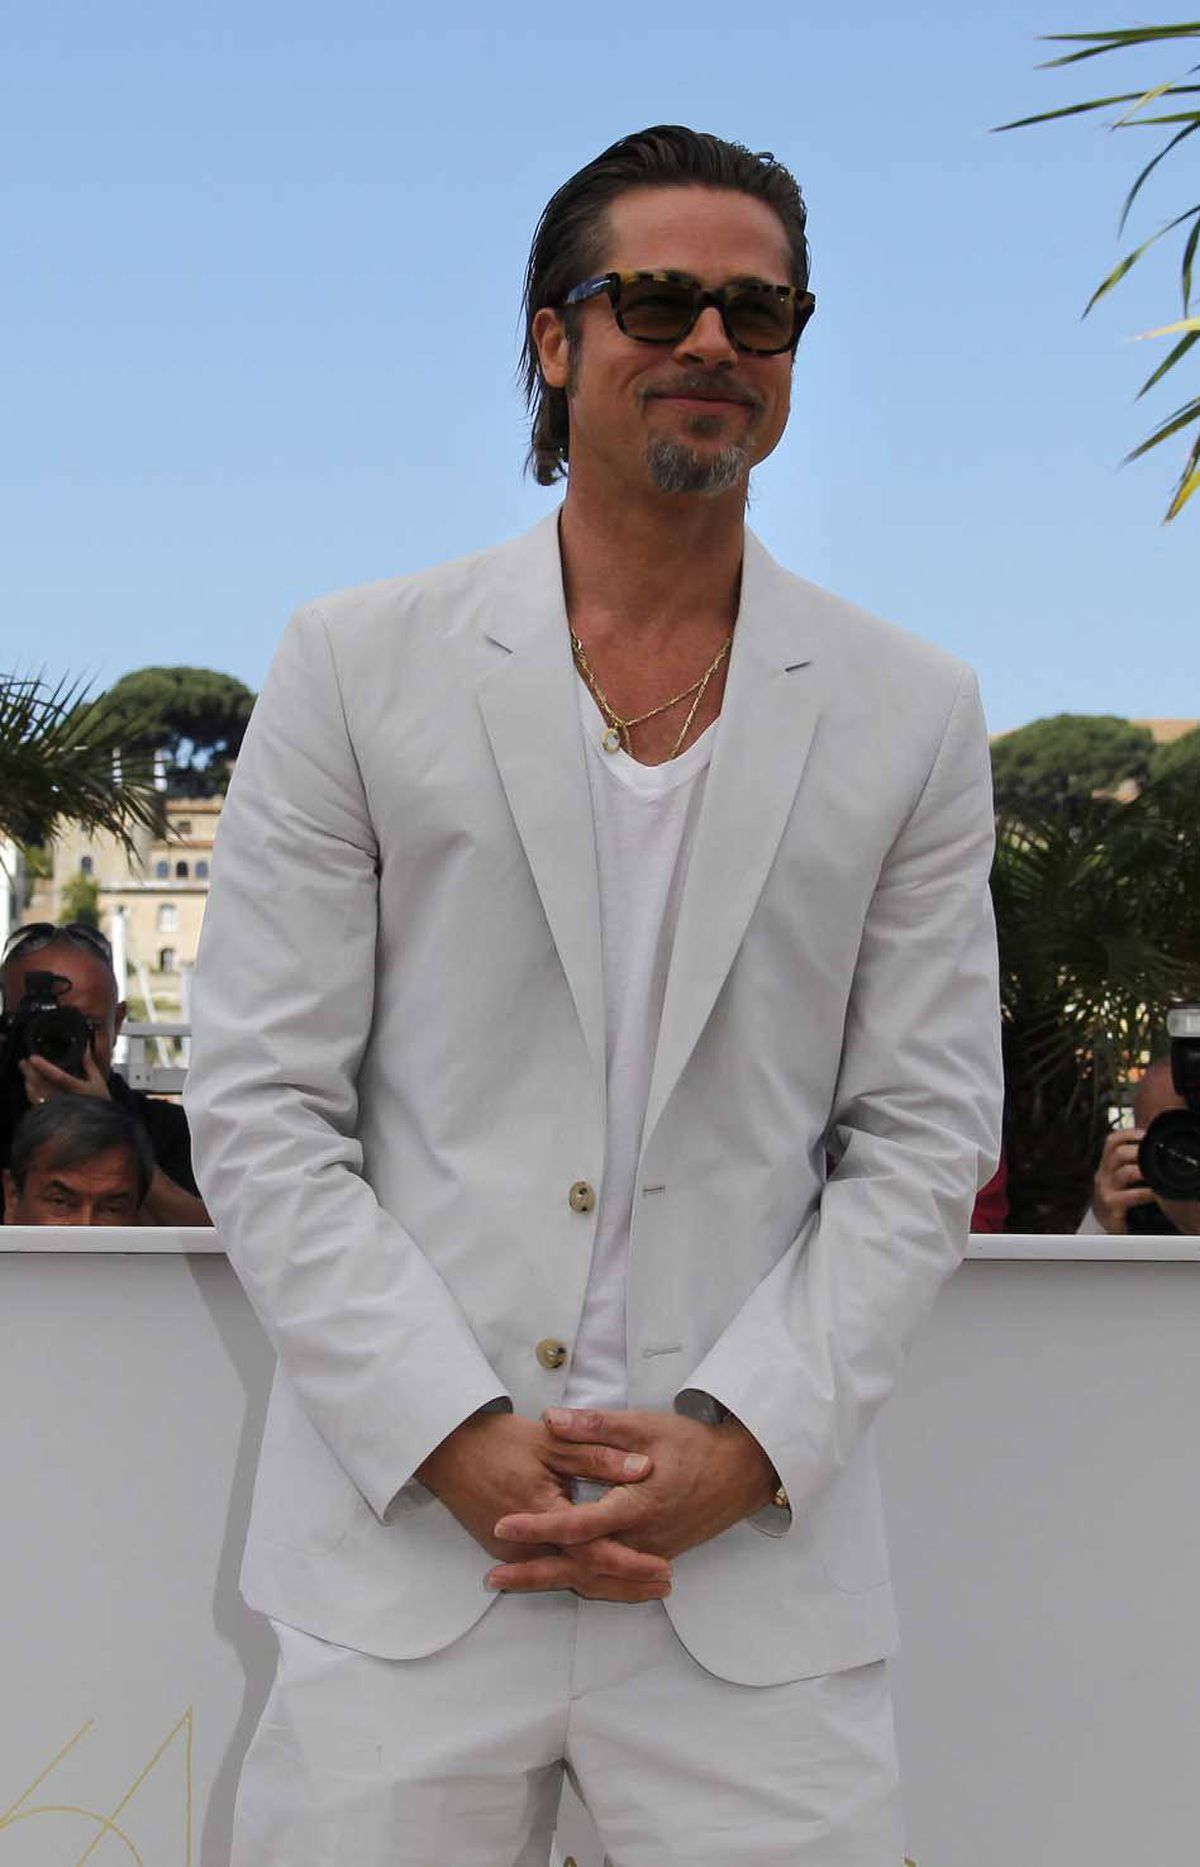 """Brad Pitt poses during the photo call for the film """"The Tree of Life"""" at the 64th Cannes Film Festival in Cannes, France, on Monday."""